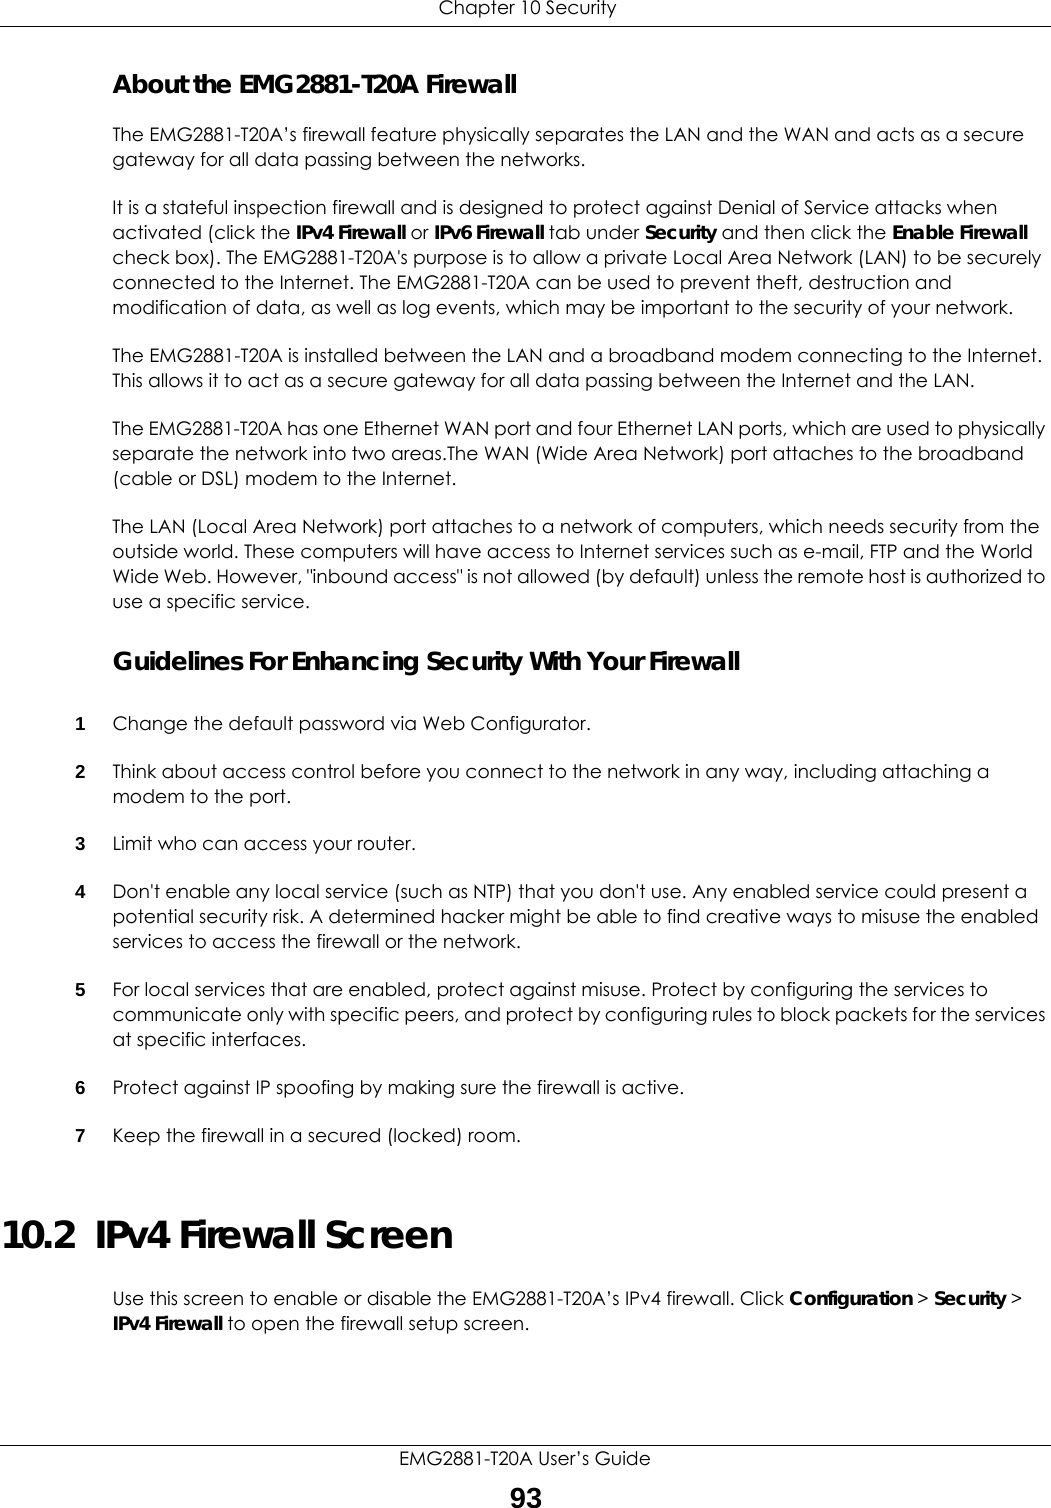 """Chapter 10 SecurityEMG2881-T20A User's Guide93About the EMG2881-T20A FirewallThe EMG2881-T20A's firewall feature physically separates the LAN and the WAN and acts as a secure gateway for all data passing between the networks.It is a stateful inspection firewall and is designed to protect against Denial of Service attacks when activated (click the IPv4 Firewall or IPv6 Firewall tab under Security and then click the Enable Firewall check box). The EMG2881-T20A's purpose is to allow a private Local Area Network (LAN) to be securely connected to the Internet. The EMG2881-T20A can be used to prevent theft, destruction and modification of data, as well as log events, which may be important to the security of your network. The EMG2881-T20A is installed between the LAN and a broadband modem connecting to the Internet. This allows it to act as a secure gateway for all data passing between the Internet and the LAN.The EMG2881-T20A has one Ethernet WAN port and four Ethernet LAN ports, which are used to physically separate the network into two areas.The WAN (Wide Area Network) port attaches to the broadband (cable or DSL) modem to the Internet.The LAN (Local Area Network) port attaches to a network of computers, which needs security from the outside world. These computers will have access to Internet services such as e-mail, FTP and the World Wide Web. However, """"inbound access"""" is not allowed (by default) unless the remote host is authorized to use a specific service.Guidelines For Enhancing Security With Your Firewall1Change the default password via Web Configurator. 2Think about access control before you connect to the network in any way, including attaching a modem to the port. 3Limit who can access your router. 4Don't enable any local service (such as NTP) that you don't use. Any enabled service could present a potential security risk. A determined hacker might be able to find creative ways to misuse the enabled services to access the firewall or the network. 5For local se"""